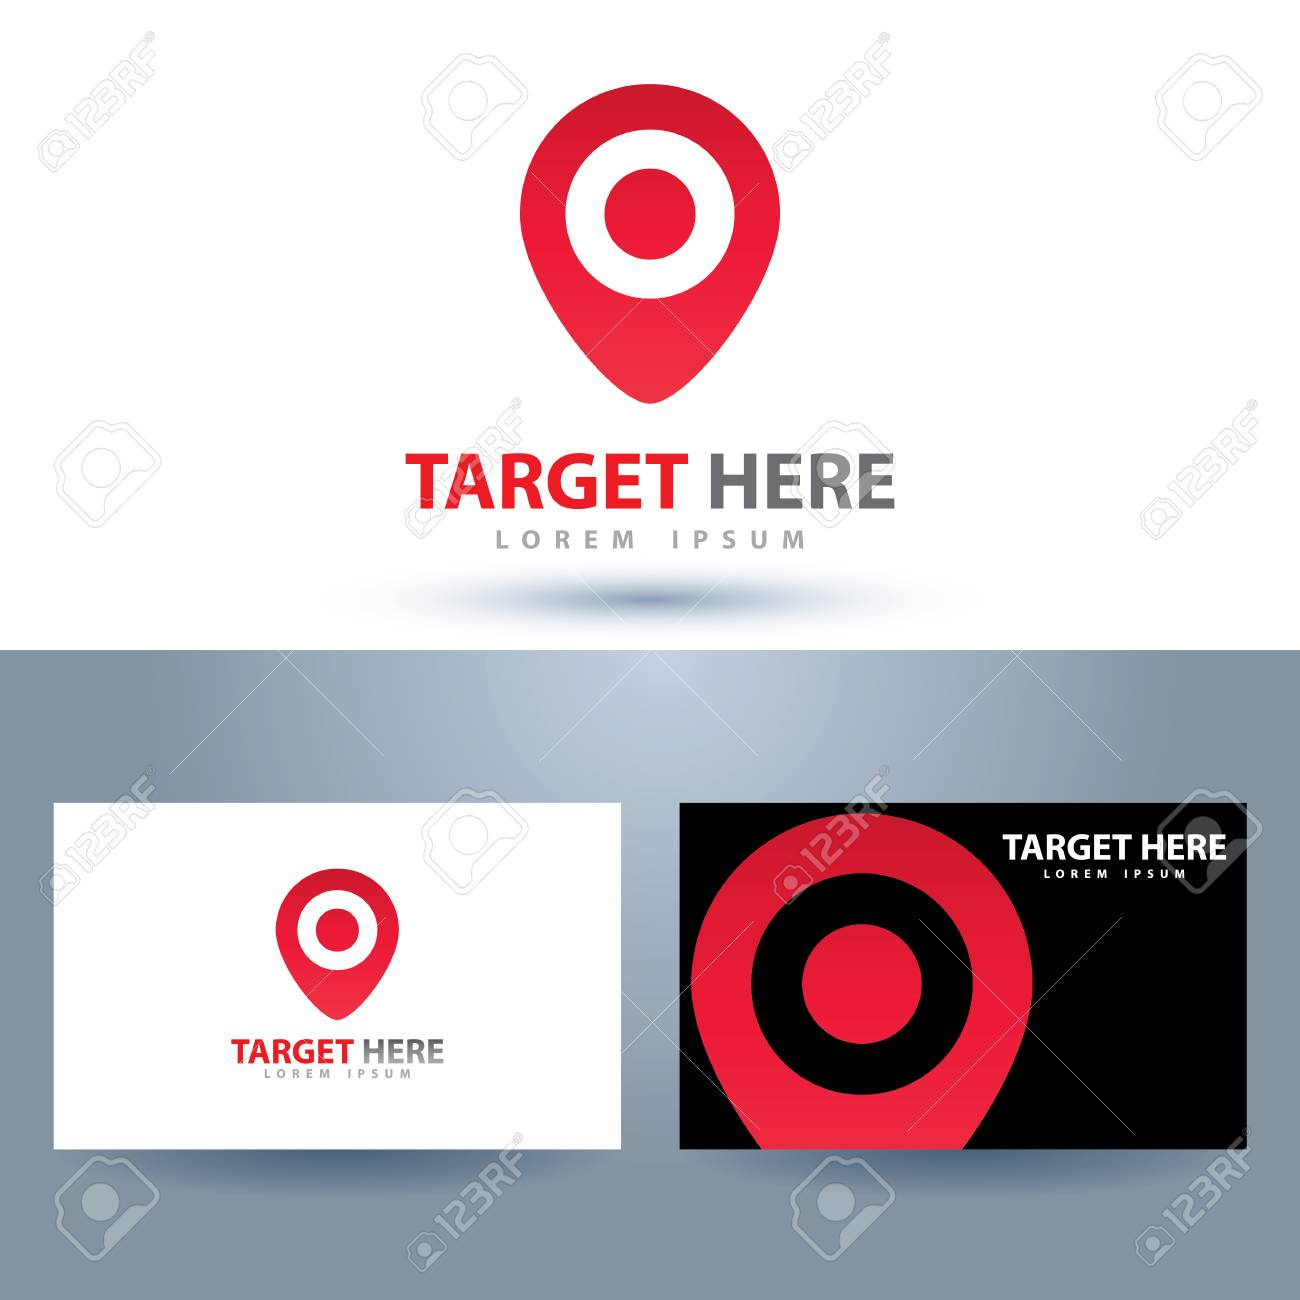 Target Here Symbol Icon. Design Element With Business Card Template ...